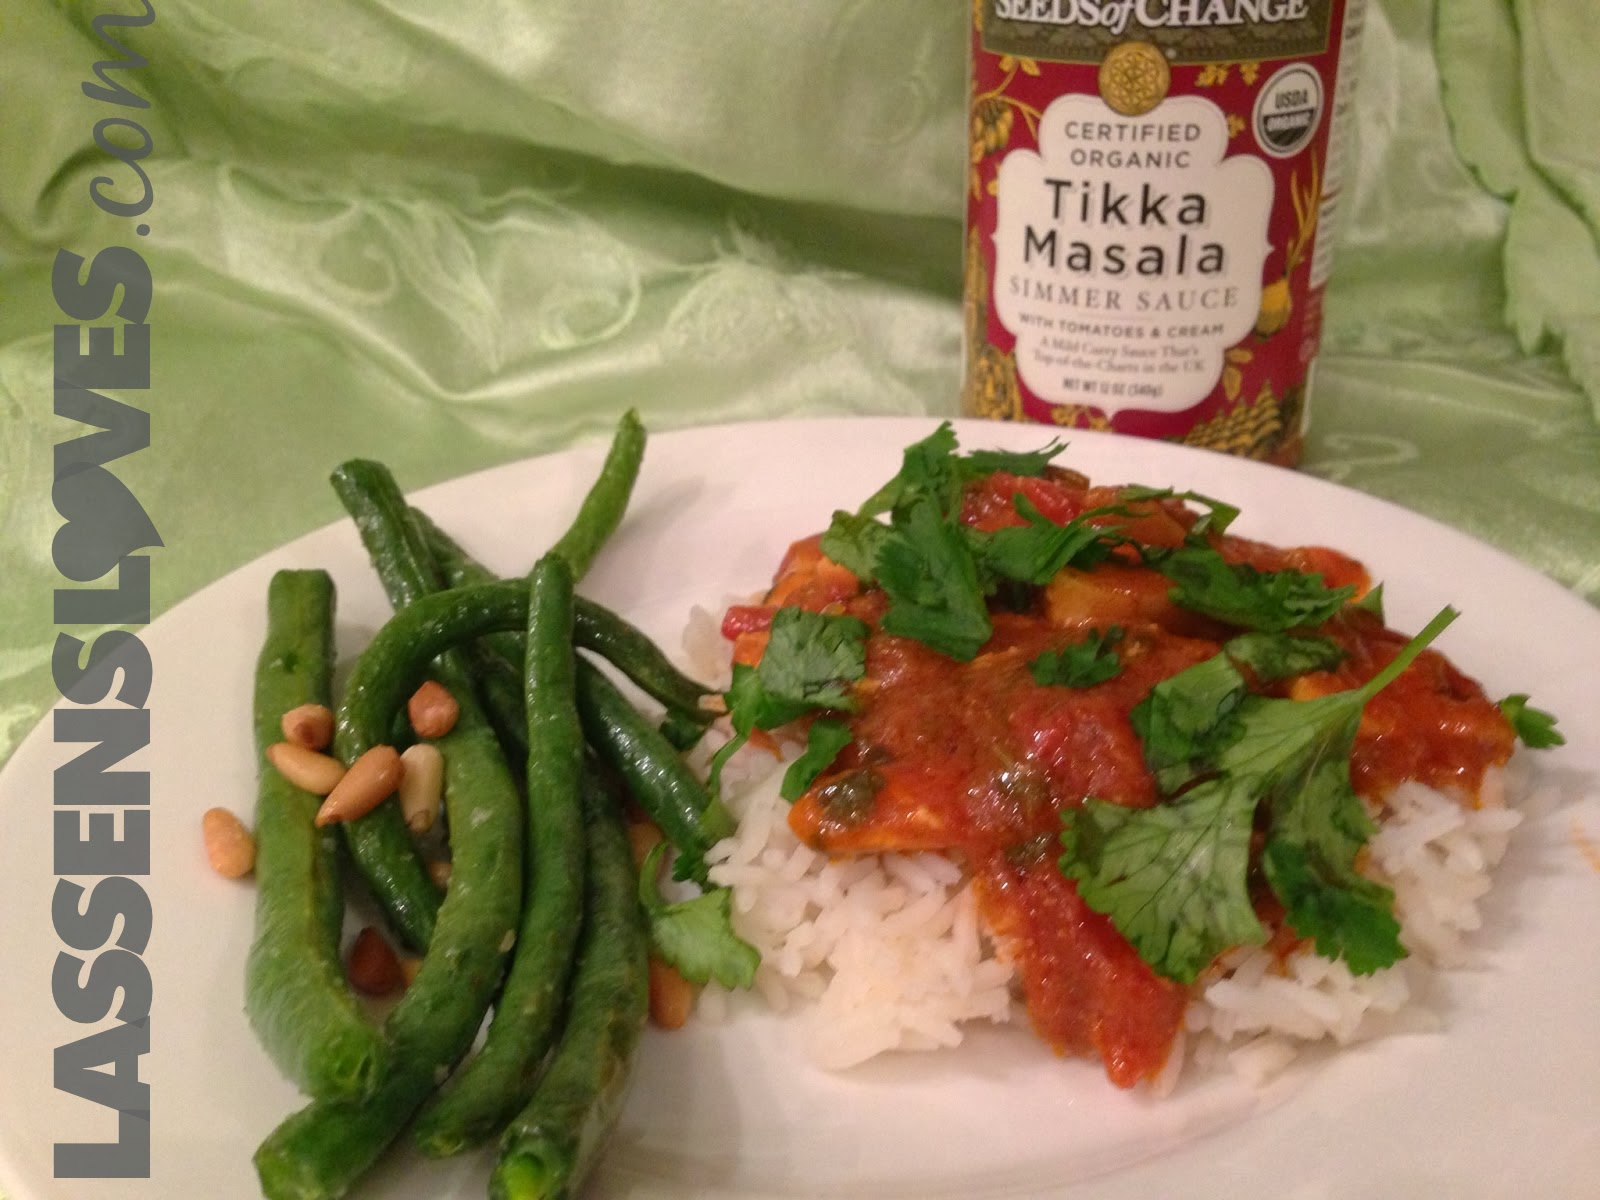 easy+dinner, dinner+in+a+hurry, Indian+stir+sauces, Tikka+Masala